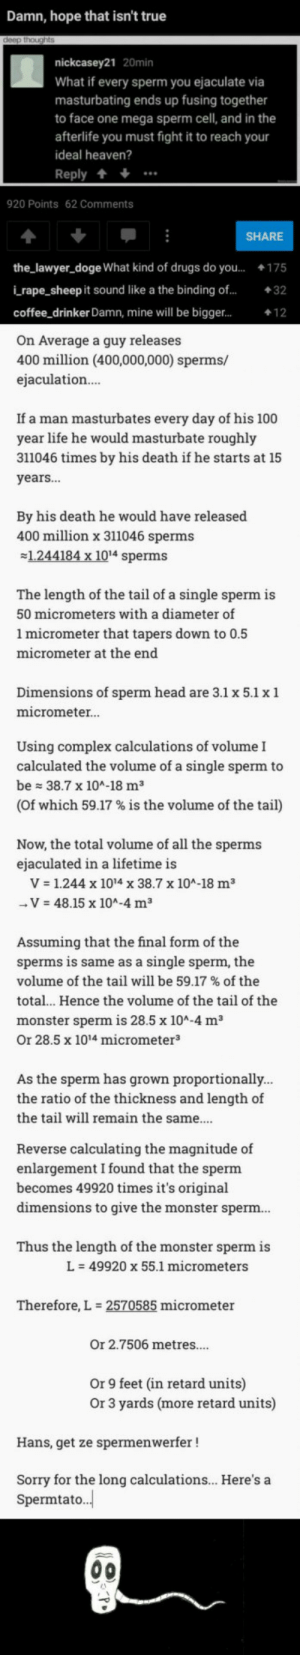 So I saw this.I wasted an hour on this shityes I study both math and biology: Damn, hope that isn't true  nickcasey21 20min  What if every sperm you ejaculate via  masturbating ends up fusing together  to face one mega sperm cell, and in the  afterlife you must fight it to reach your  ideal heaven?  Reply +  920 Points 62 Comments  SHARE  the_lawyer_doge What kind of drugs do you...175  i rape_sheep it sound like a the binding of...32  coffee drinker Damn, mine will be bigger...  On Average a guy releases  400 million (400,000,000) sperms/  ejaculation  If a man masturbates every day of his 100  year life he would masturbate roughly  311046 times by his death if he starts at 15  years...  By his death he would have released  400 million x 311046 sperms  1.244184 x 1014 sperms  The length of the tail of a single sperm is  50 micrometers with a diameter of  1 micrometer that tapers down to 0.5  micrometer at the end  Dimensions of sperm head are 3.1 x 5.1 x 1  micrometer.  Using complex calculations of volume I  calculated the volume of a single sperm to  be 38.7 x 104-18 m3  (of which 59.17 % is the volume of the tail)  Now, the total volume of all the sperms  ejaculated in a lifetime is  V 1.244 x 1014 x 38.7 x 10A-18 m3  V 48.15 x 104-4 m3  Assuming that the final form of the  sperms is same as a single sperm, the  volume of the tail will be 59.17 % of the  total.. Hence the volume of the tail of the  monster sperm is 28.5 x 10A-4 m3  Or 28.5 x 1014 micrometer3  As the sperm has grown proportionally  the ratio of the thickness and length of  the tail will remain the same...  Reverse calculating the magnitude of  enlargement I found that the sperm  becomes 49920 times it's original  dimensions to give the monster sperm  Thus the length of the monster sperm is  L-49920 x 55.1 micrometers  Therefore, L  2570585 micrometer  Or 2.7506 metres....  Or 9 feet (in retard units)  Or 3 yards (more retard units)  Hans, get ze spermenwerfer!  Sorry for the long calculations... Here's a  Spermtato. So I saw this.I wasted an hour on this shityes I study both math and biology